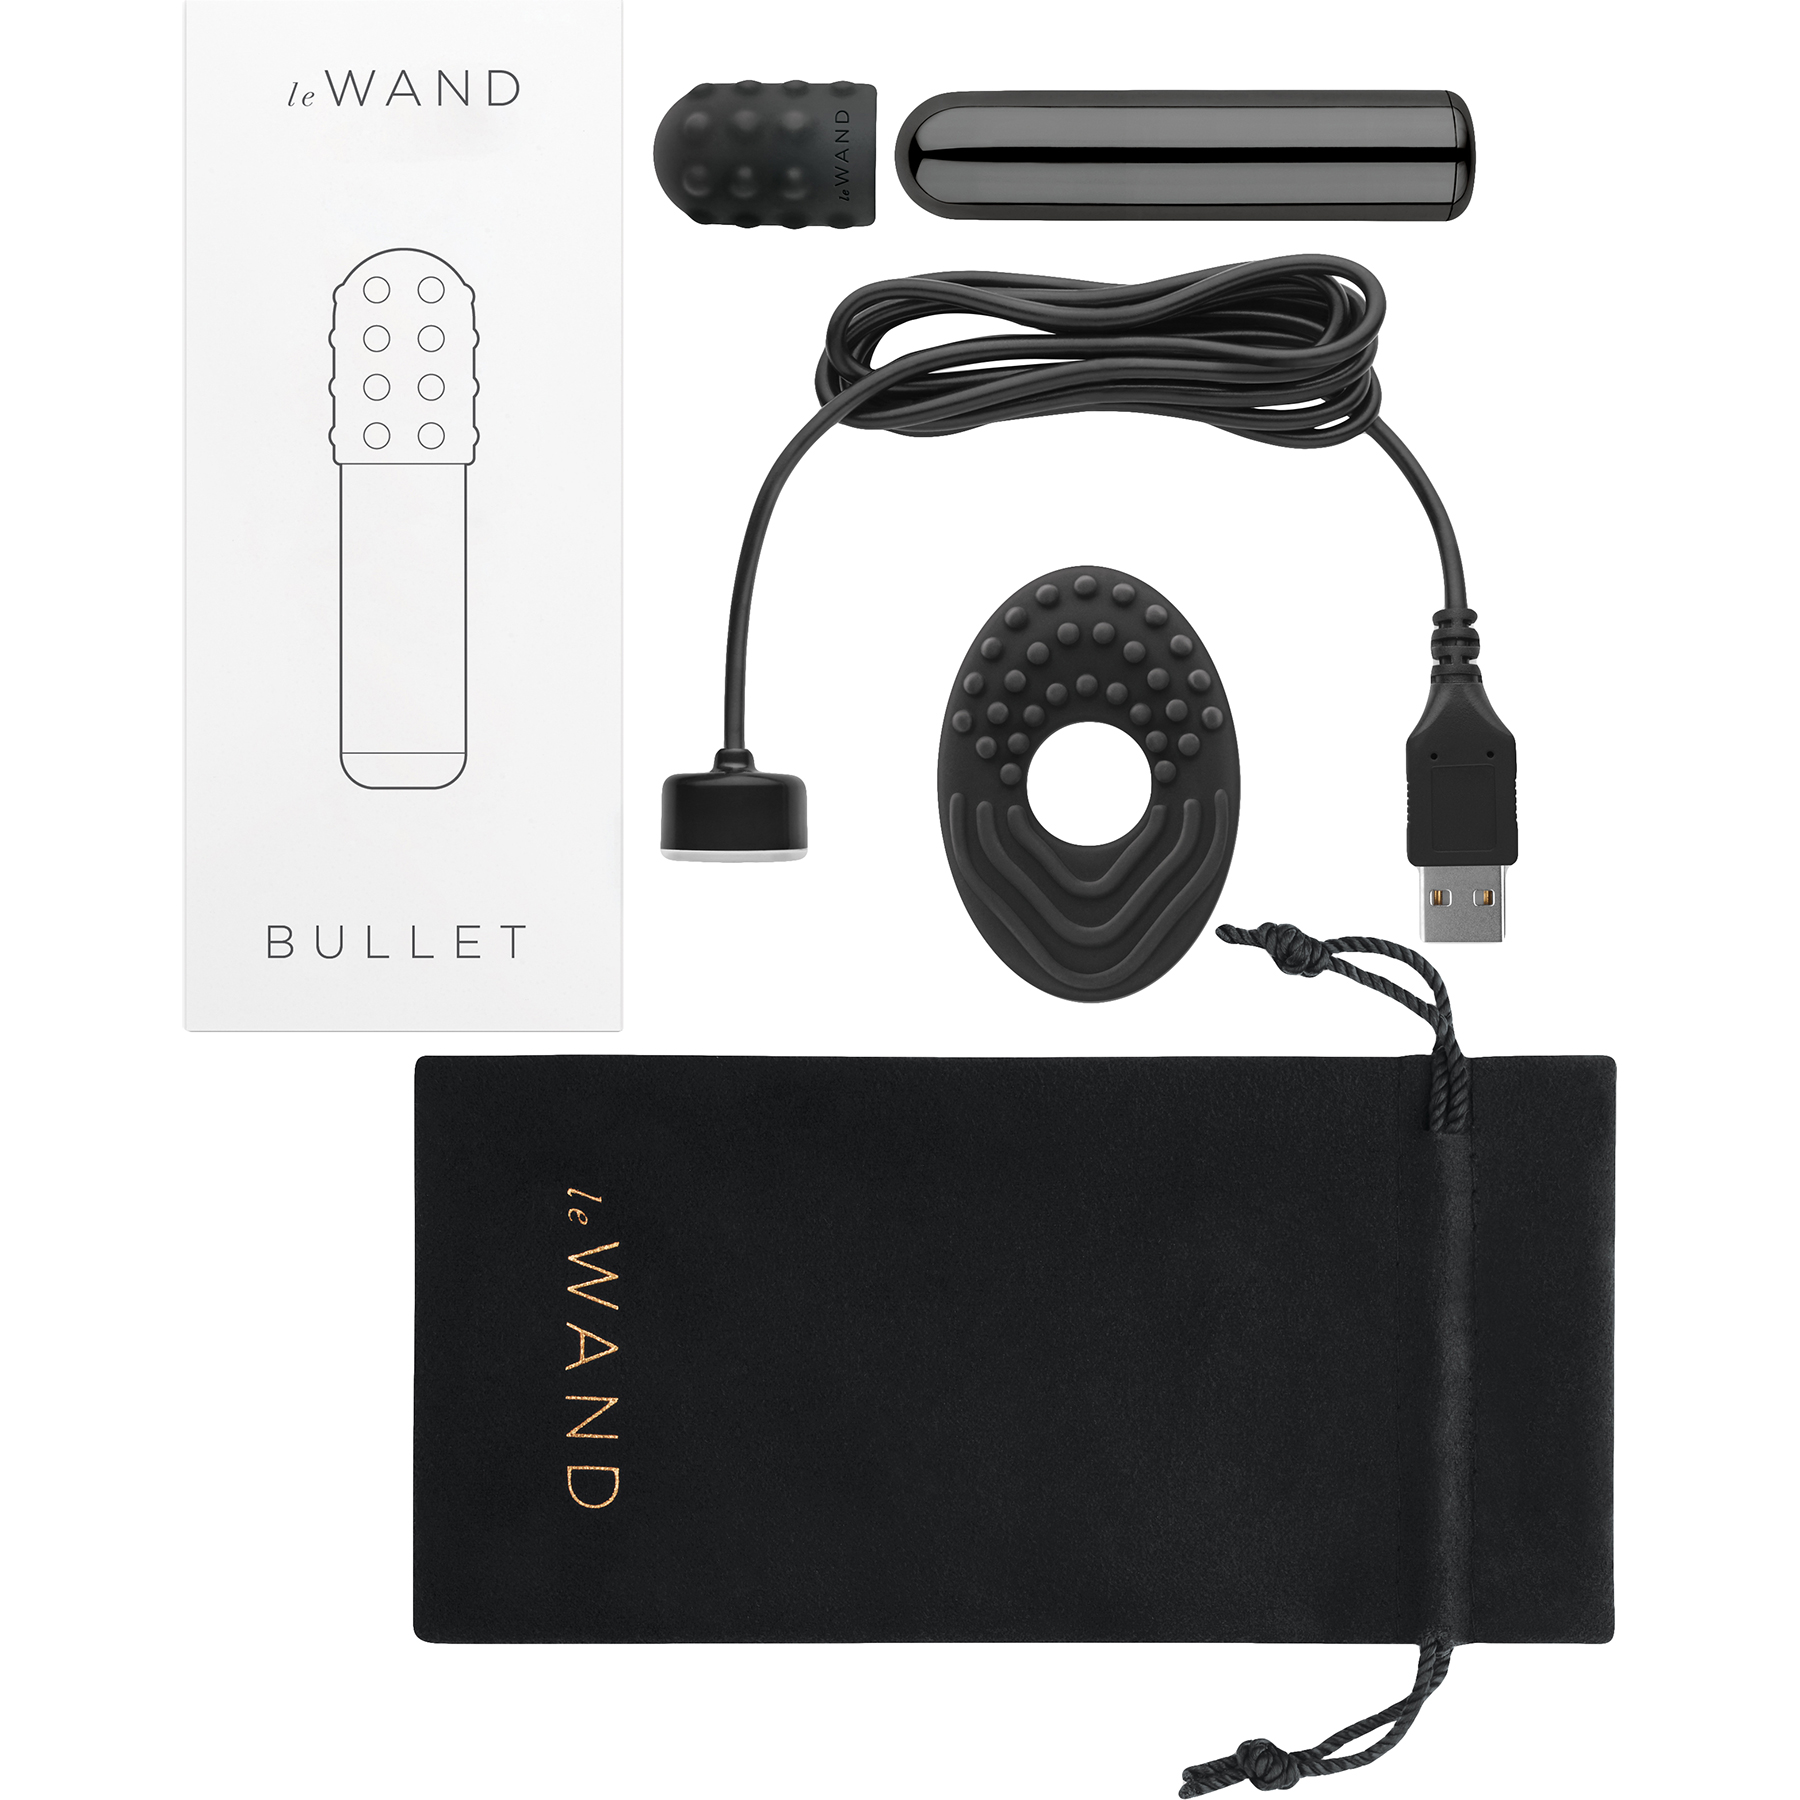 Le Wand Bullet Mini Powerful Waterproof Rechargeable Vibrator - Box Contents